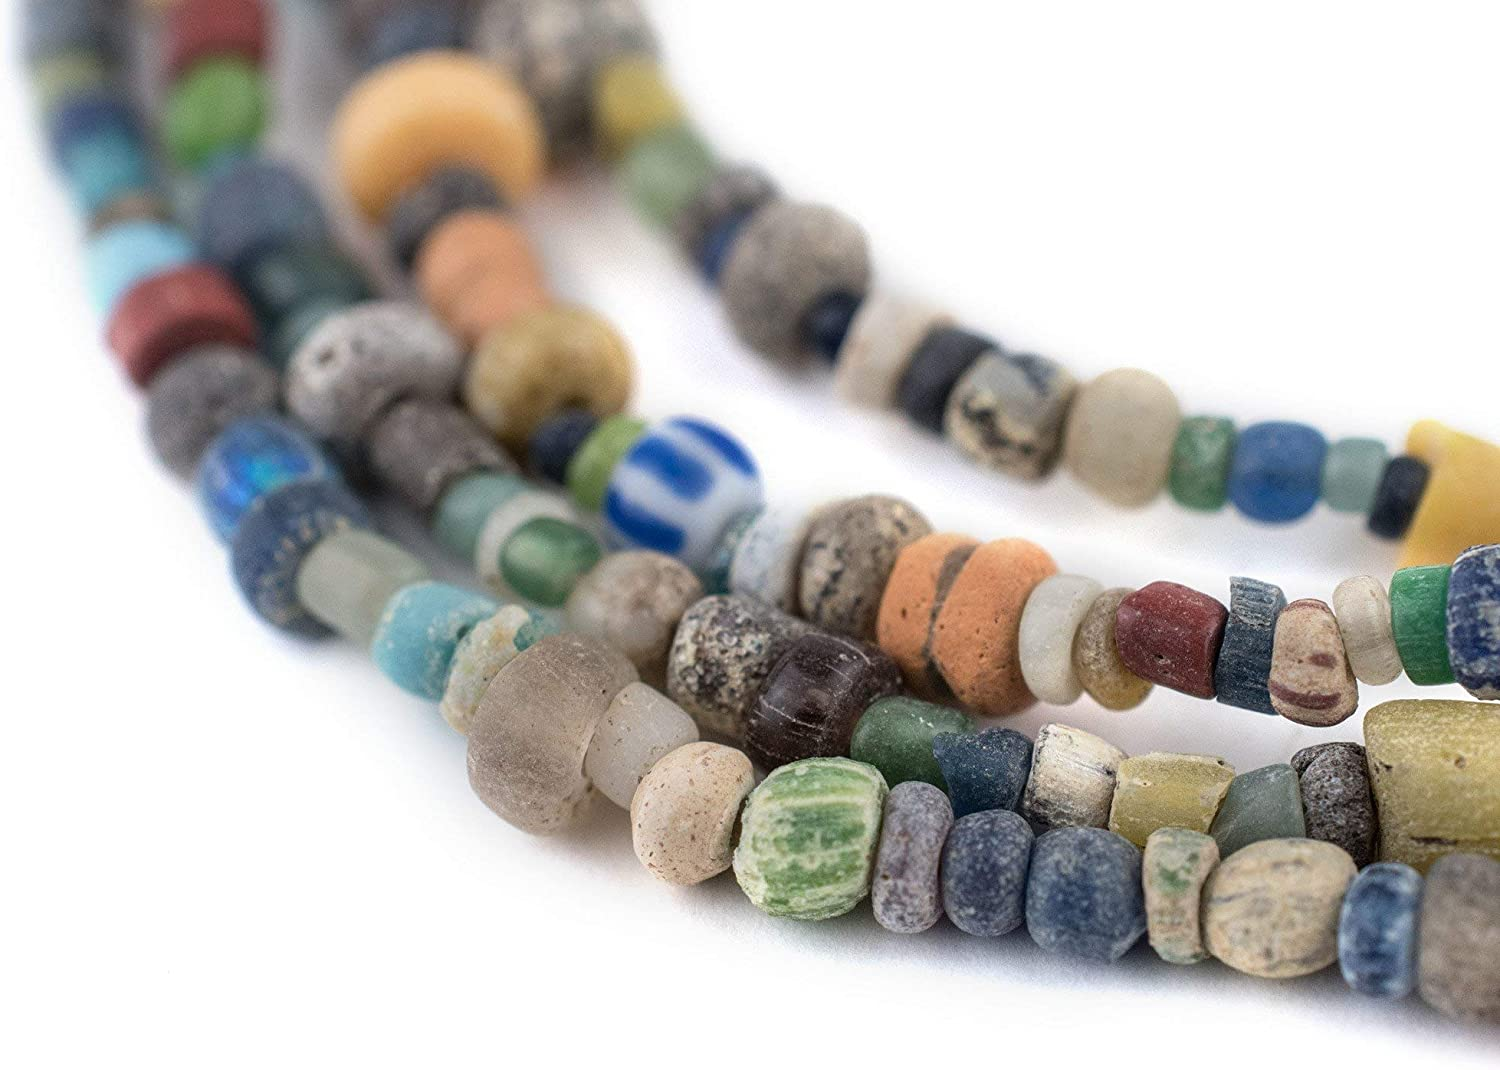 5mm Size Recycled glass beads handmade in Africa